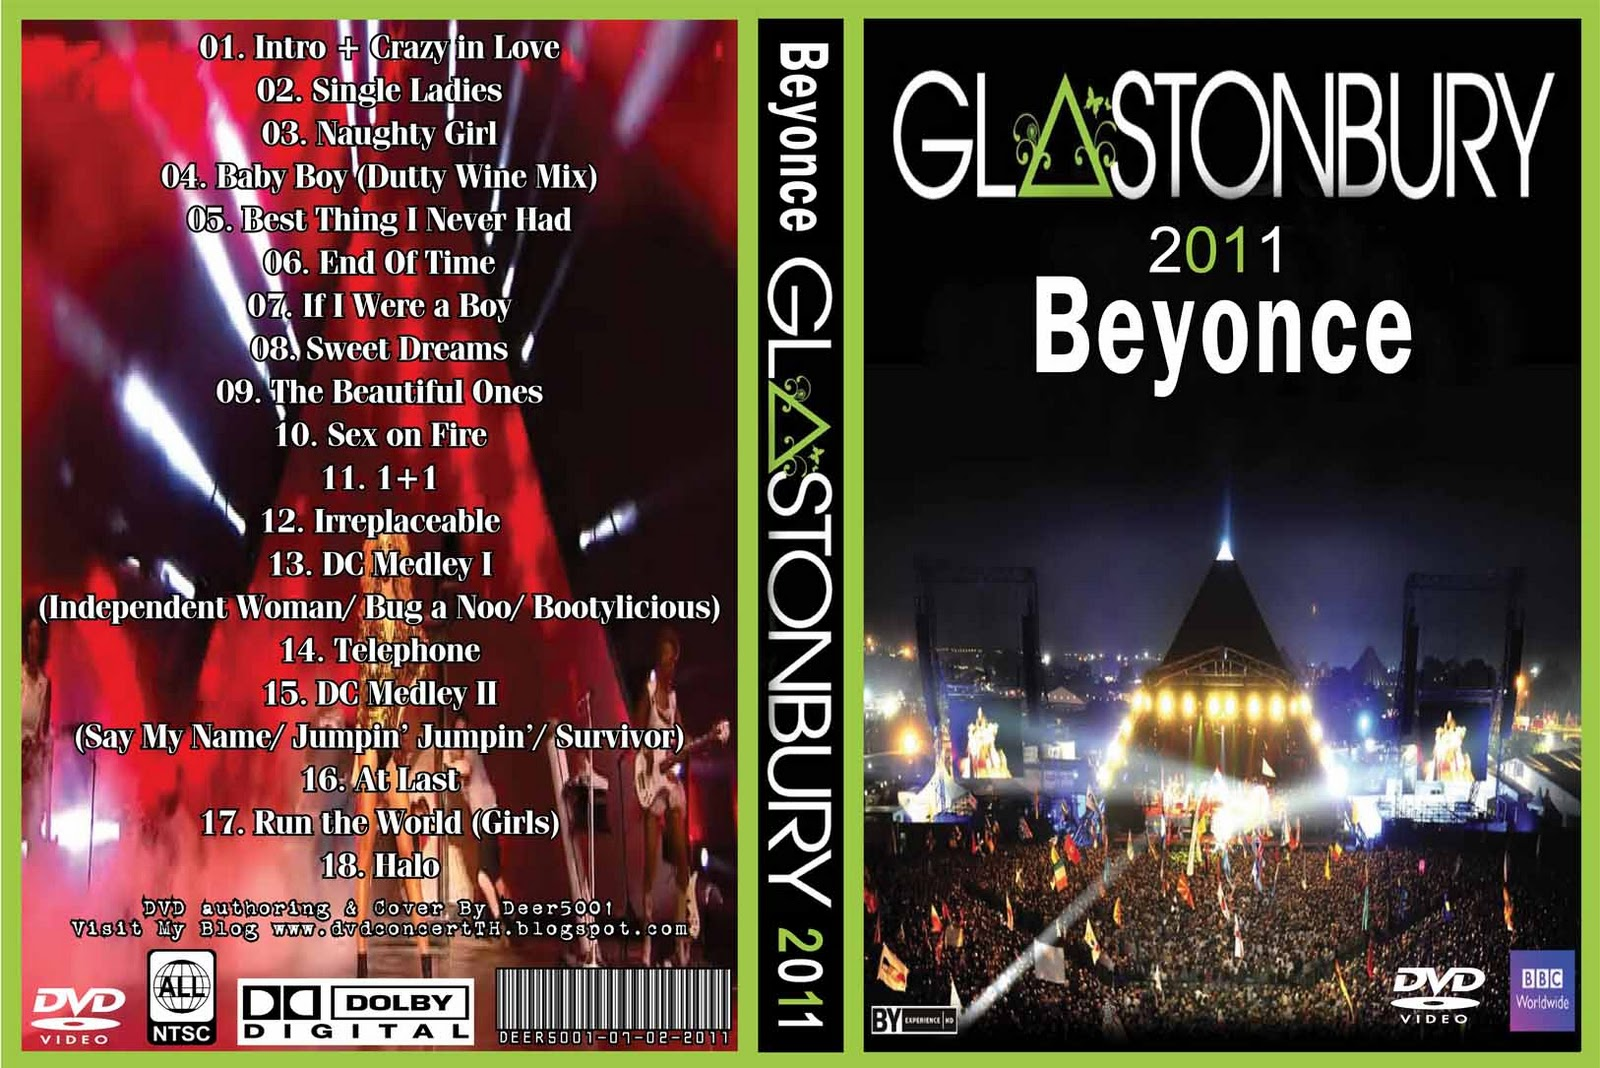 DVD Concert TH Power By Deer 5001 Beyonce 2011 Live